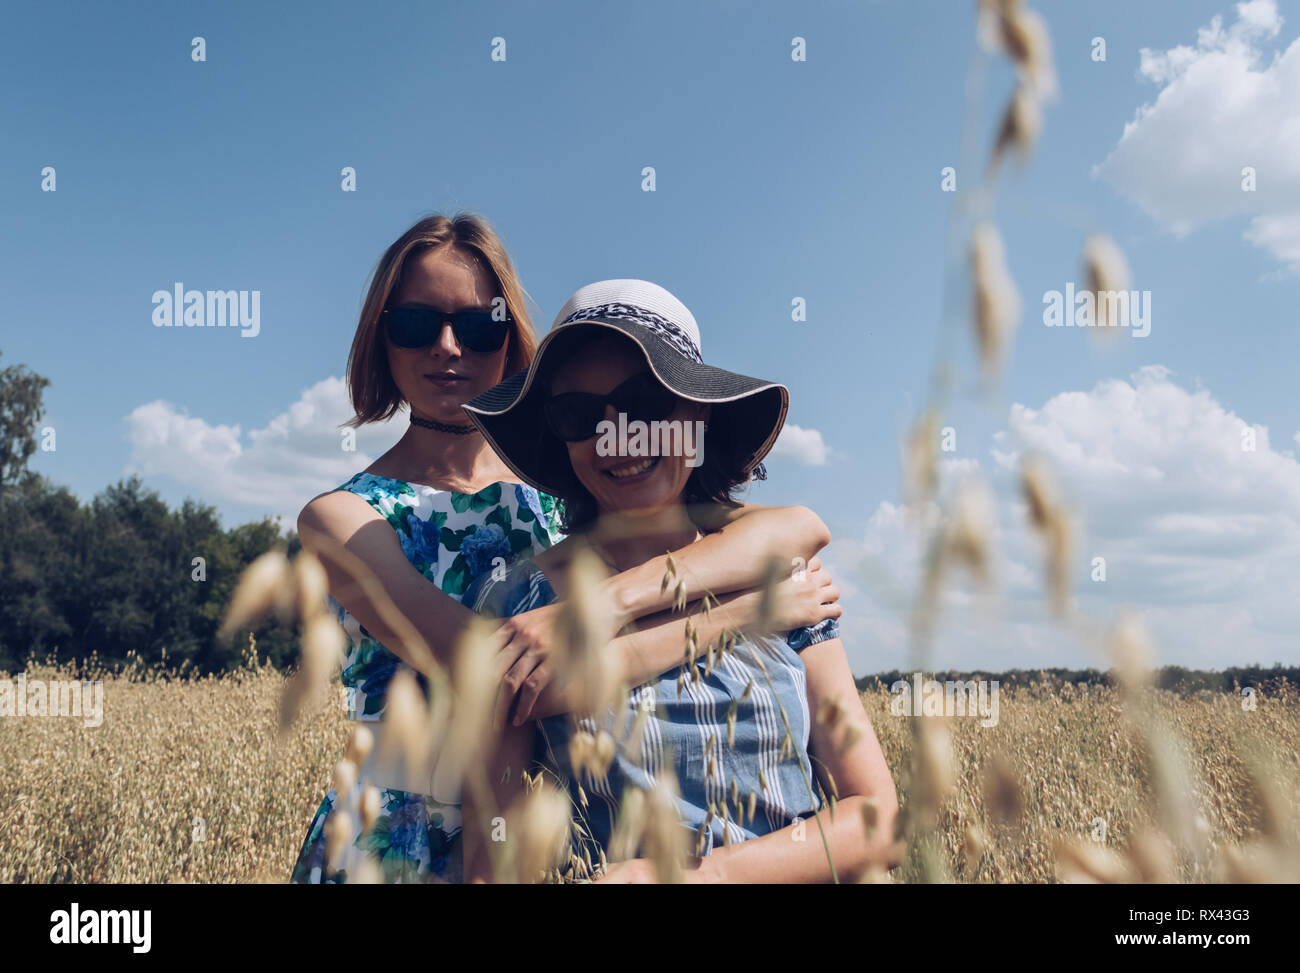 retro styled photo of hugging female friends standing in oat field on hot summer day - Stock Image